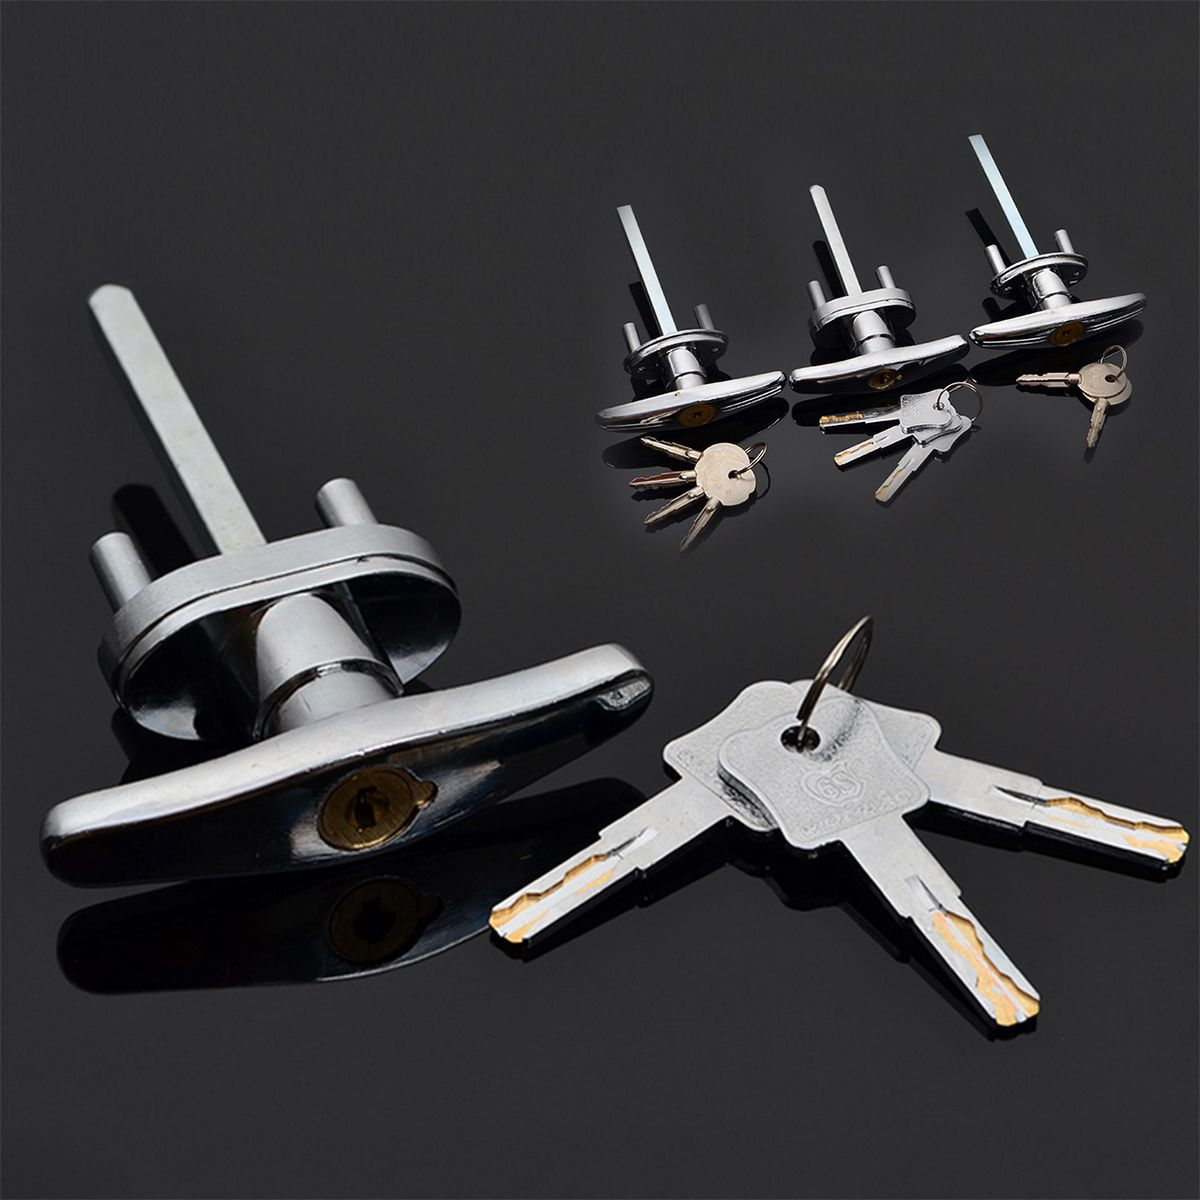 3 Types Garage Door Opener T Lock Handle With 2 3 4 Keys